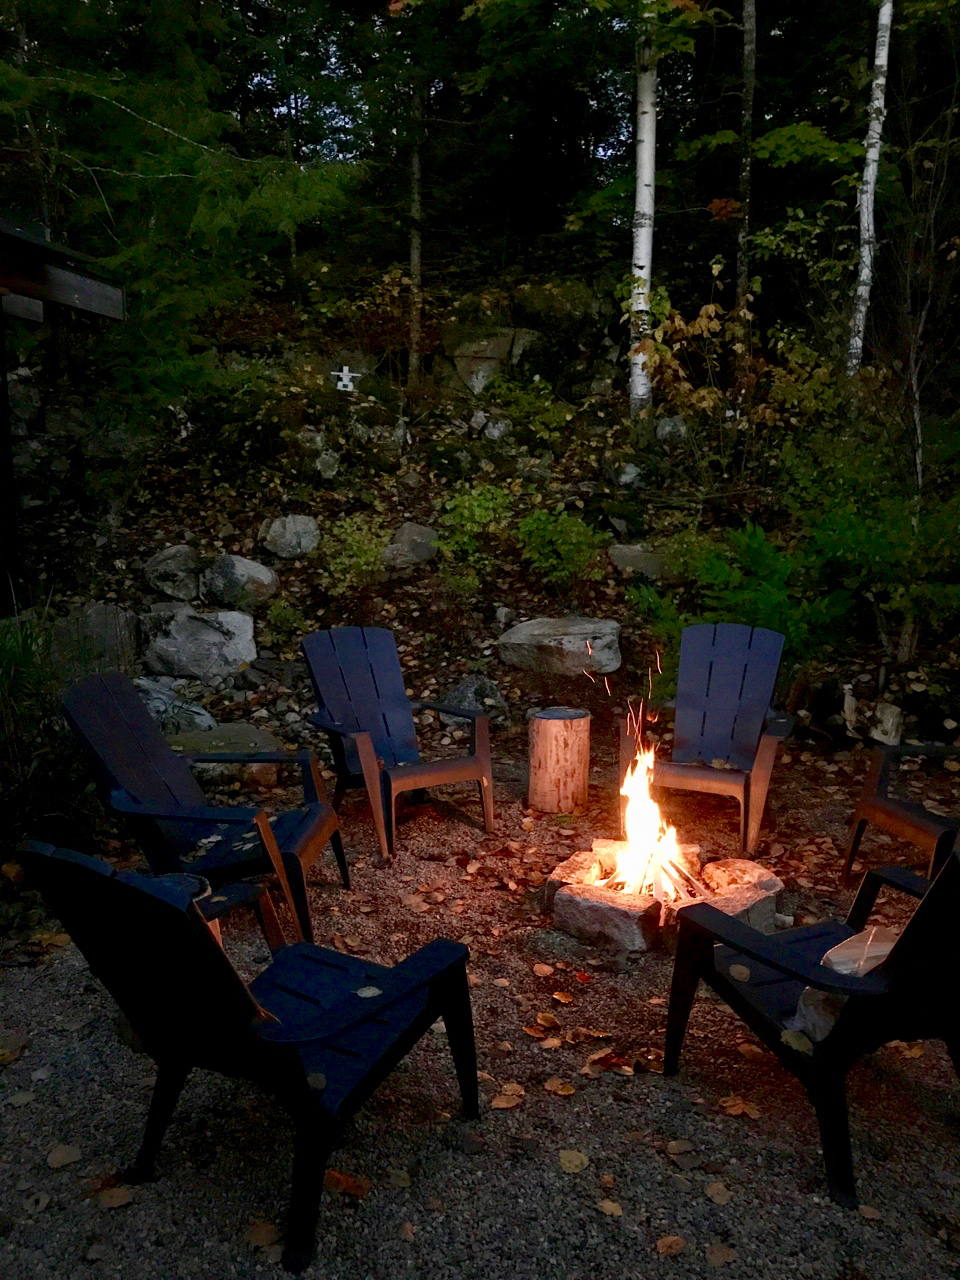 The Rear Firepit at The Bear Stand - Perfect for Ghost Stories